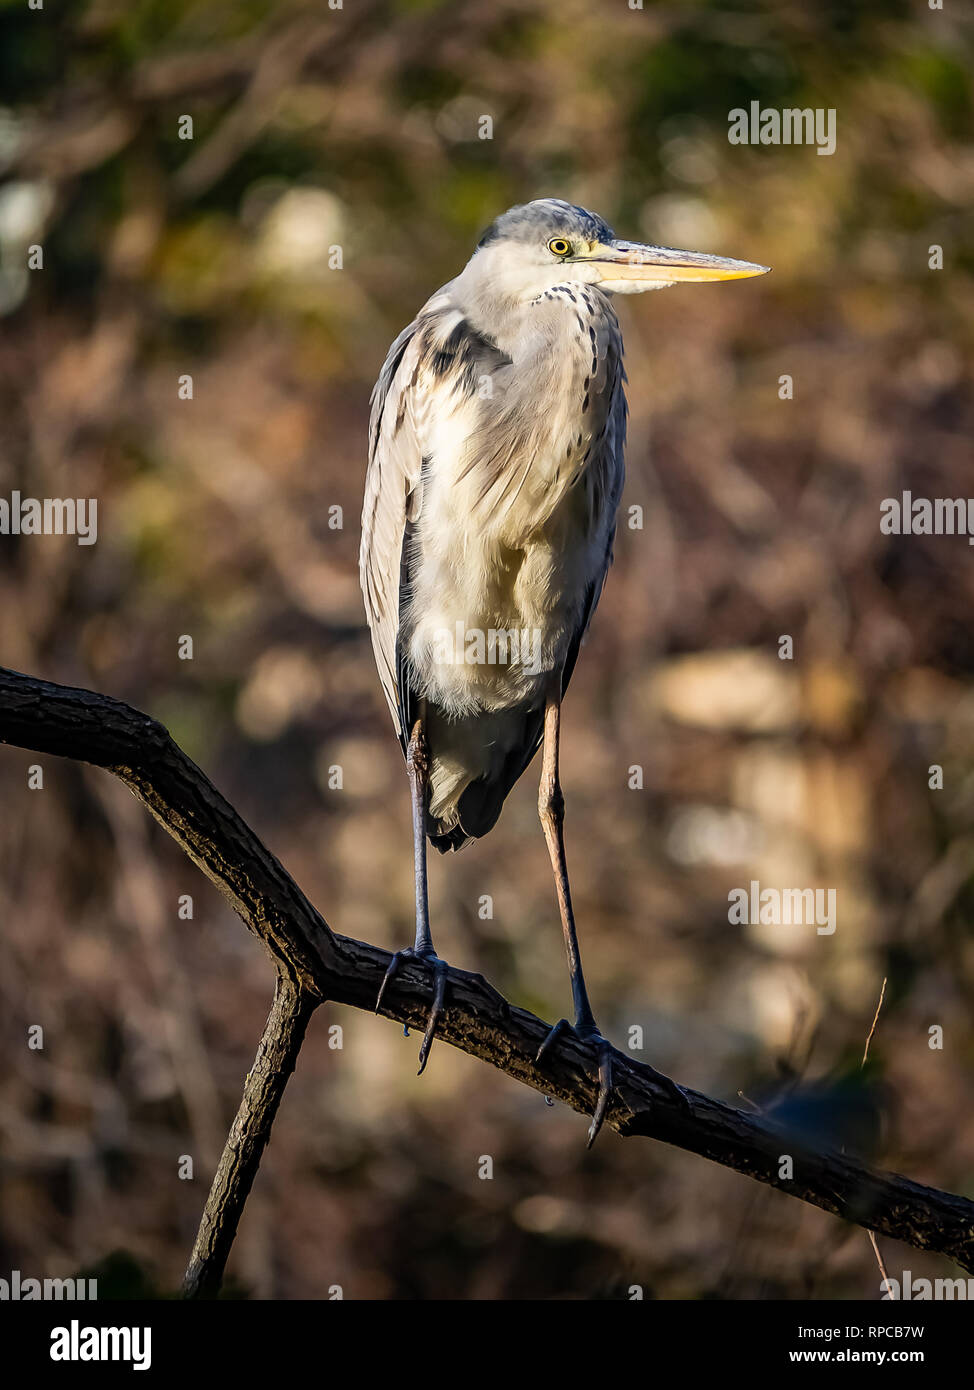 A Japanese gray heron stands on a tree branch above a small pond in central Kanagawa Prefecture, Japan. - Stock Image